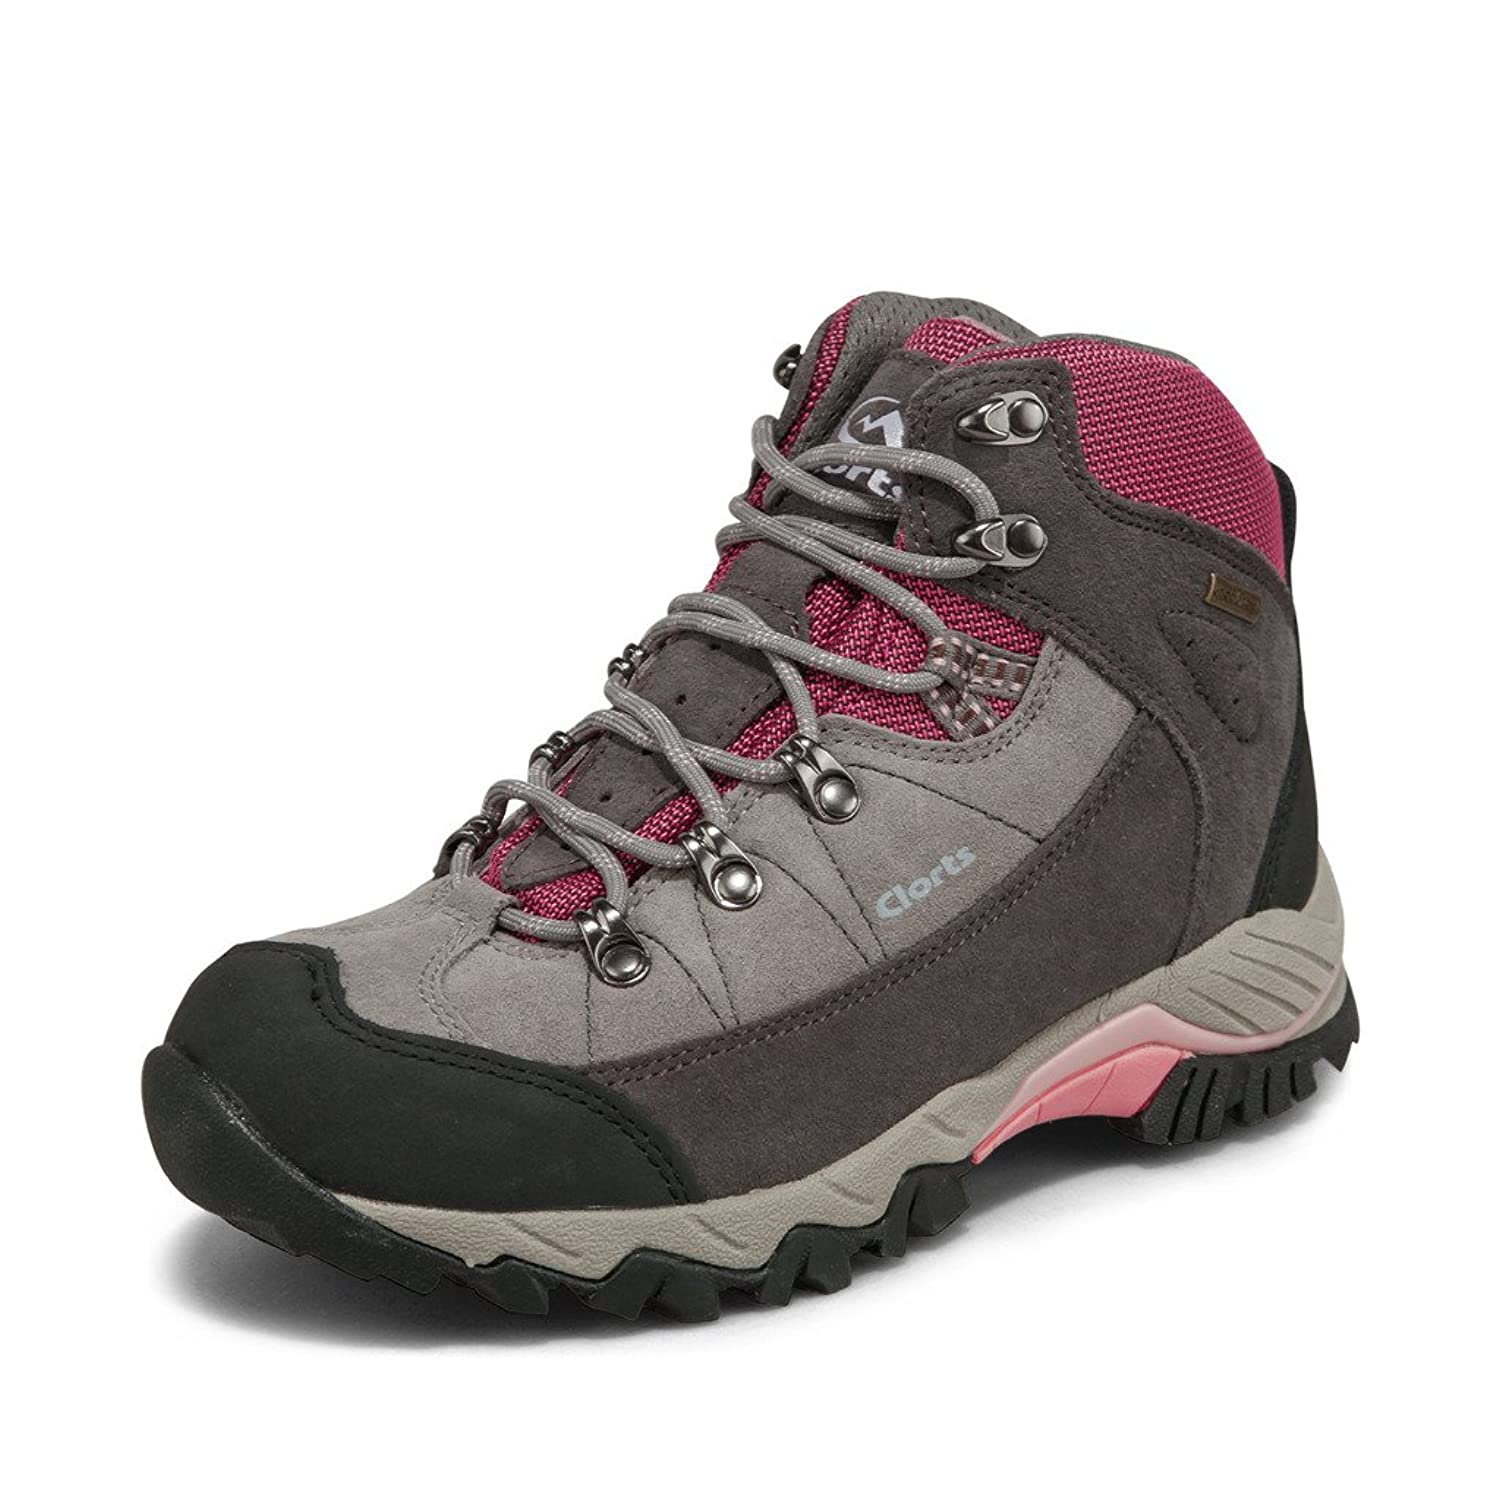 Clorts Women's Suede Uneebtex Waterproof Mid Hiking Boot Outdoor Backpacking Shoe 3B010